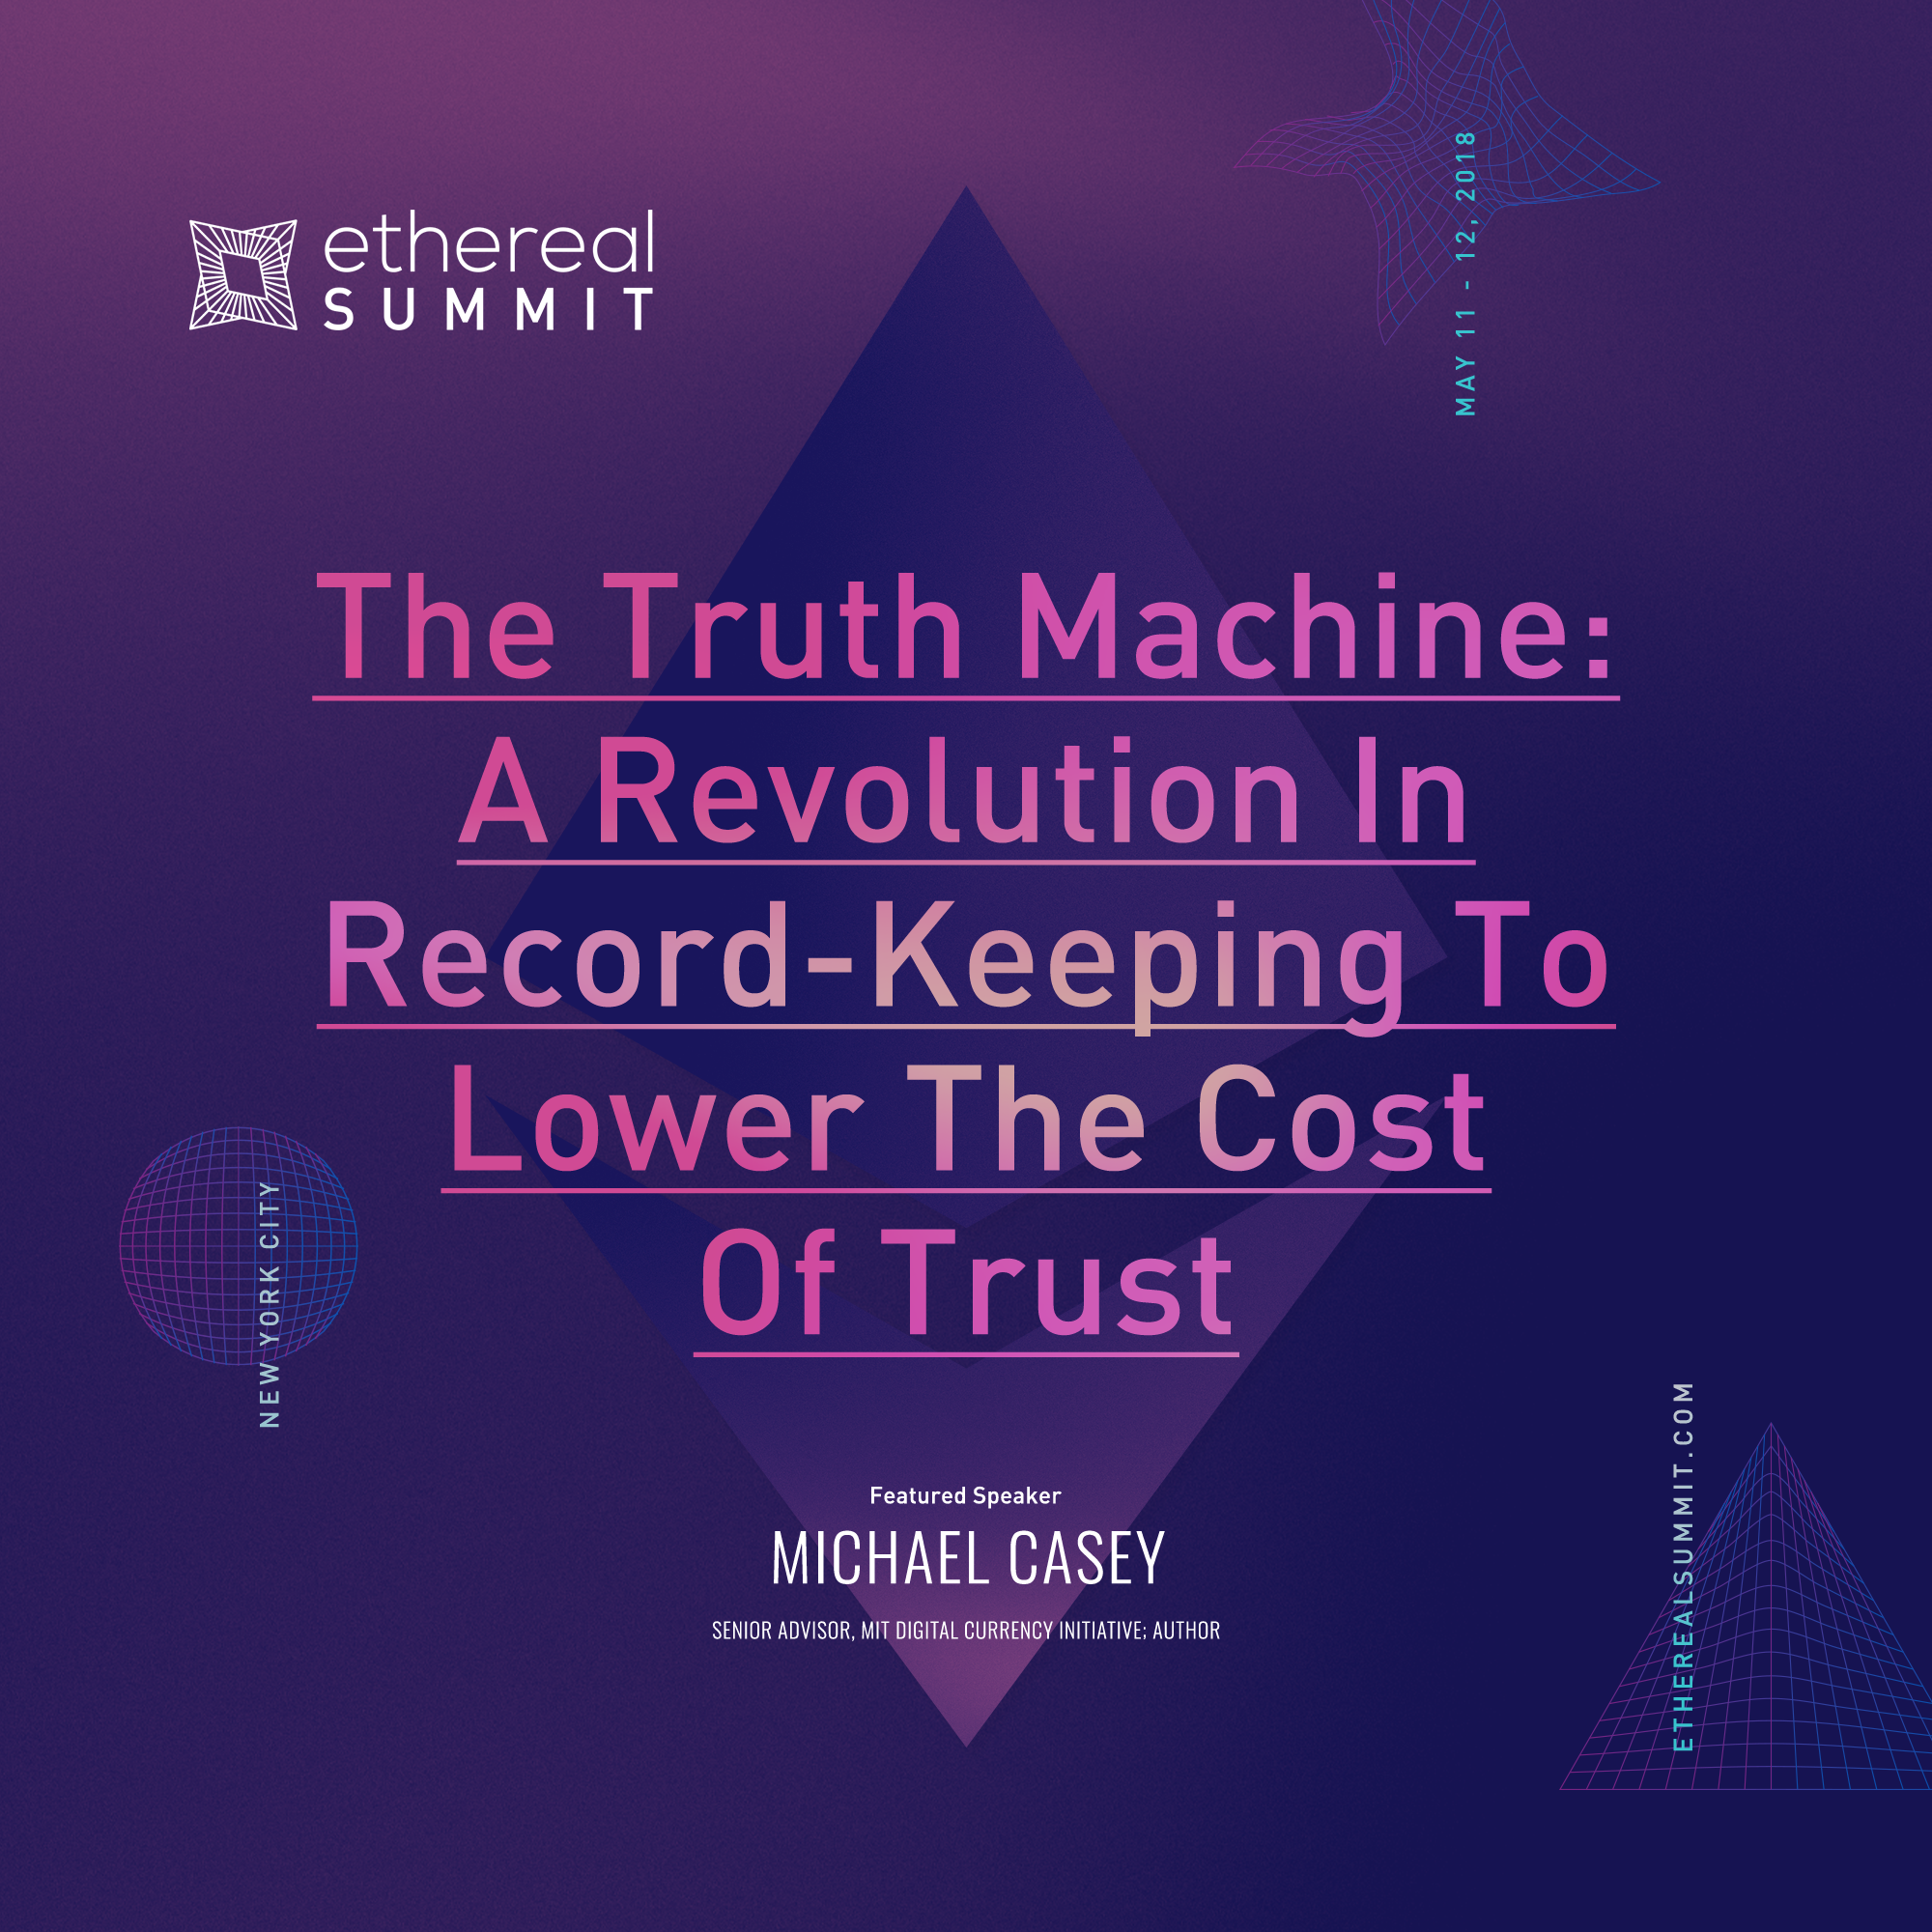 The Truth Machine: A Revolution In Recording-Keeping To Lower The Cost of Trust